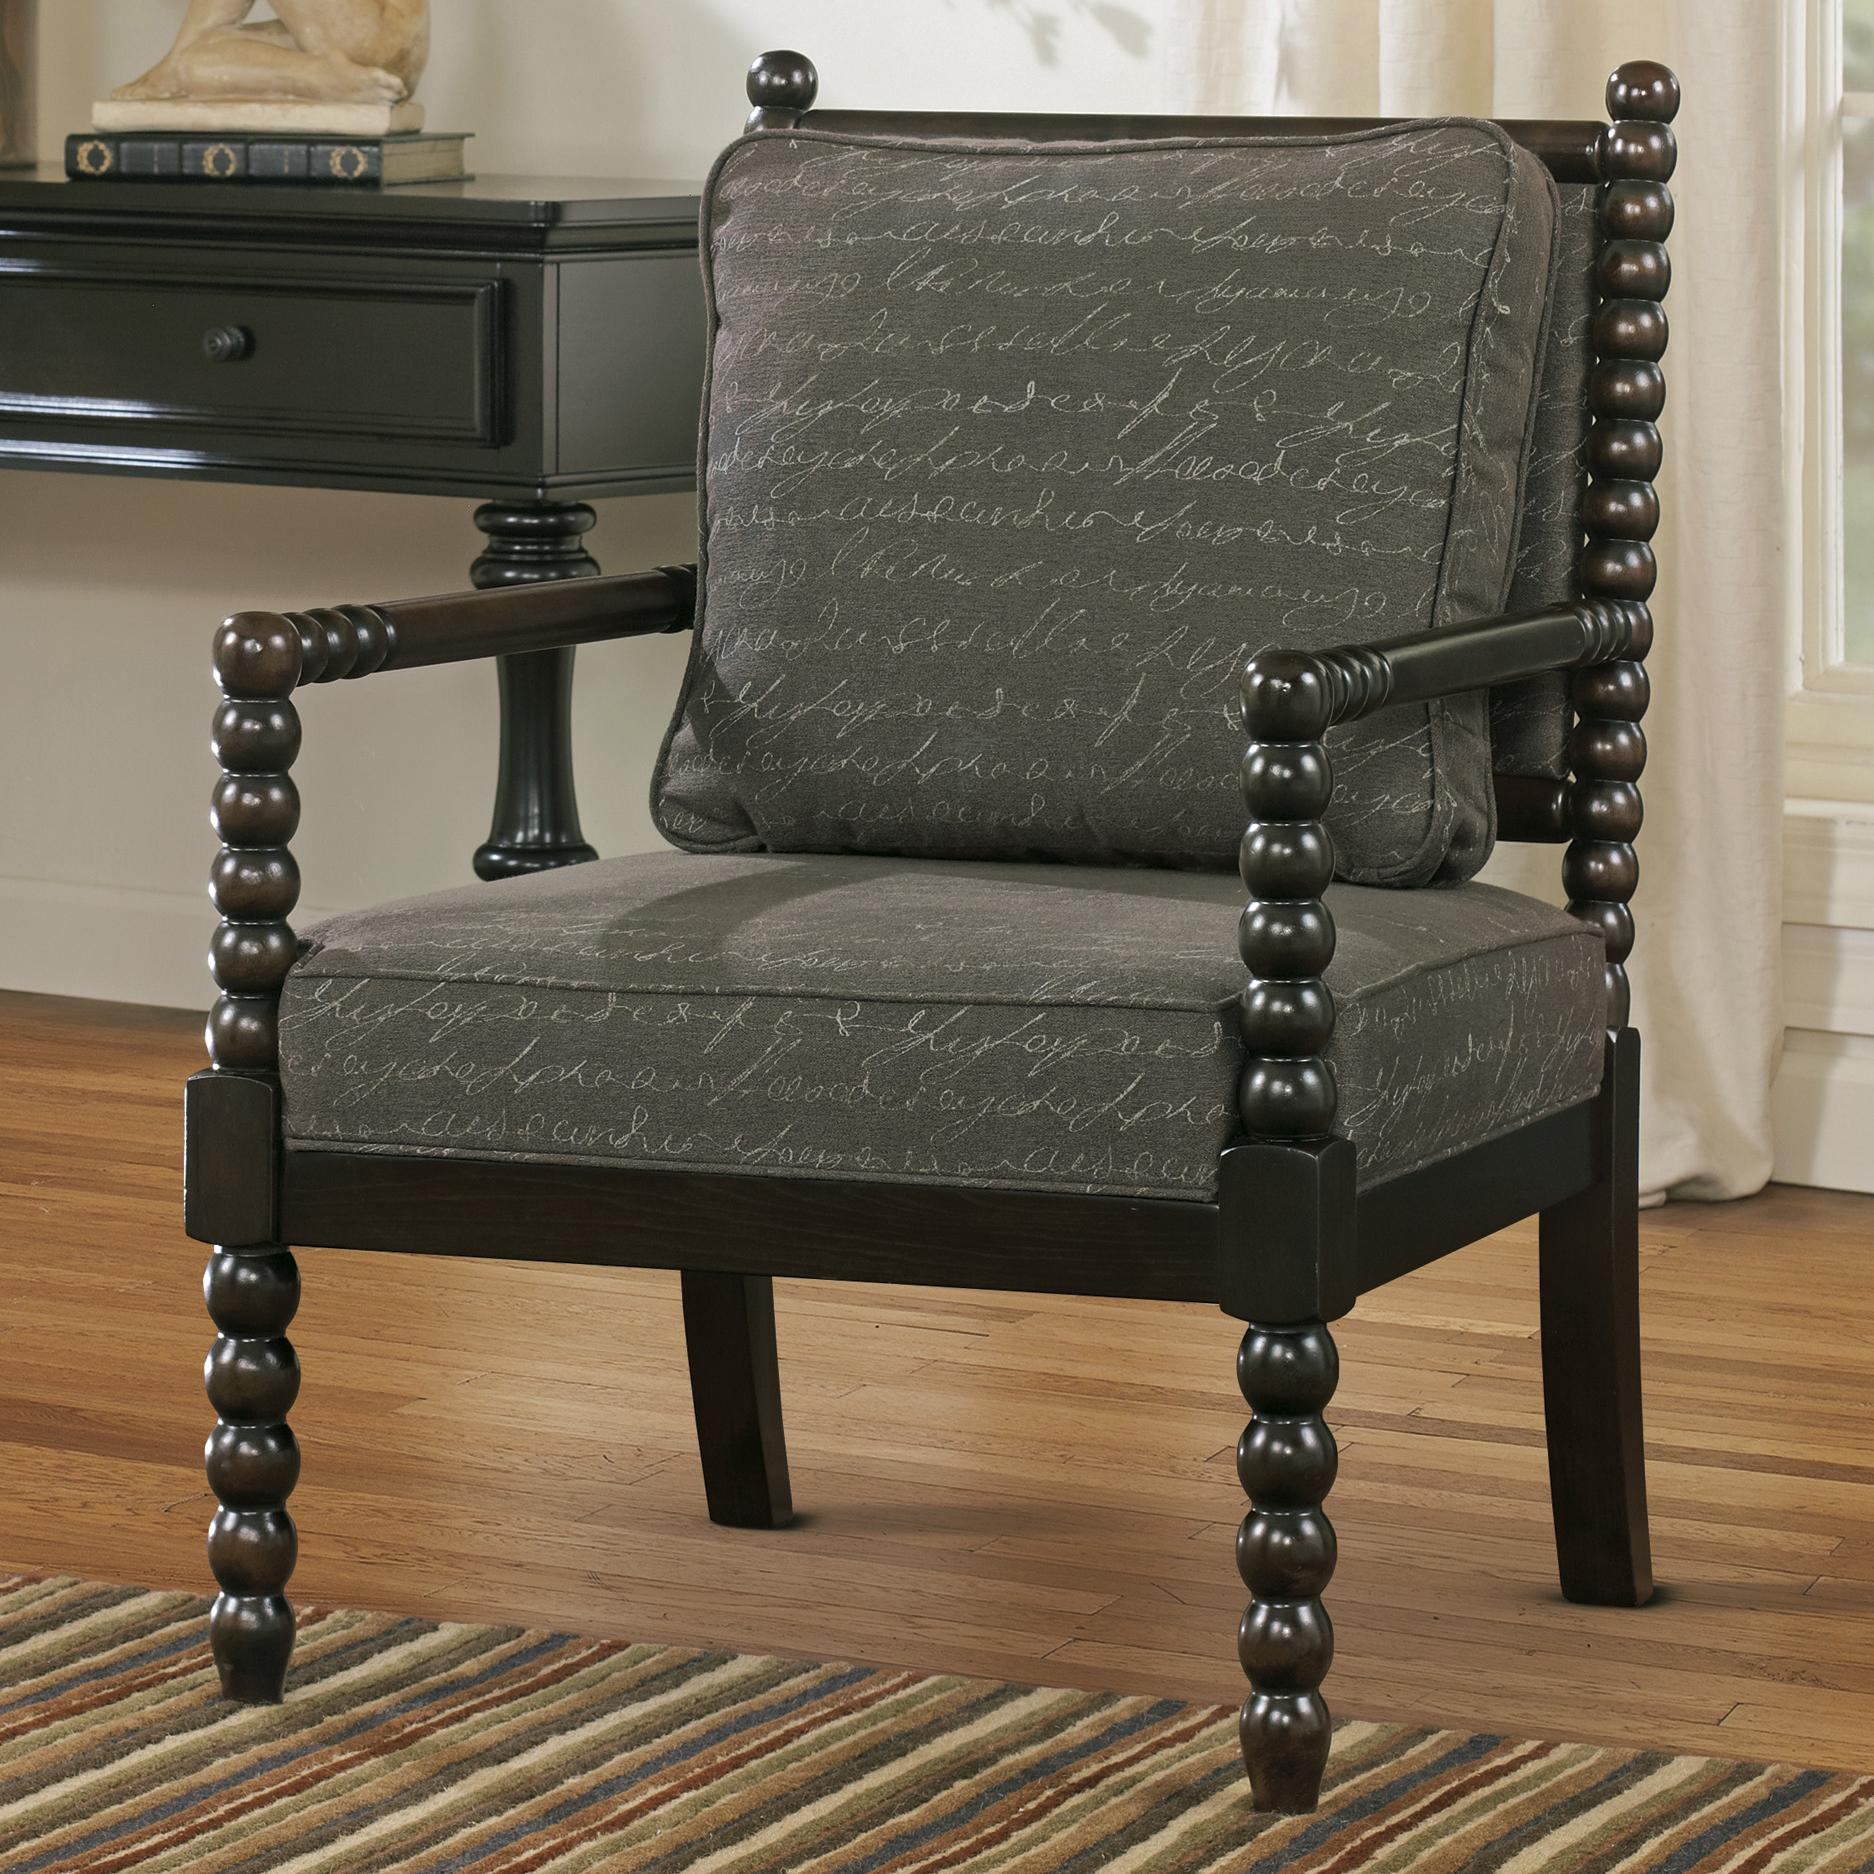 Charmant Accent Chair In Script Fabric With Spool Turned Legs And Arms